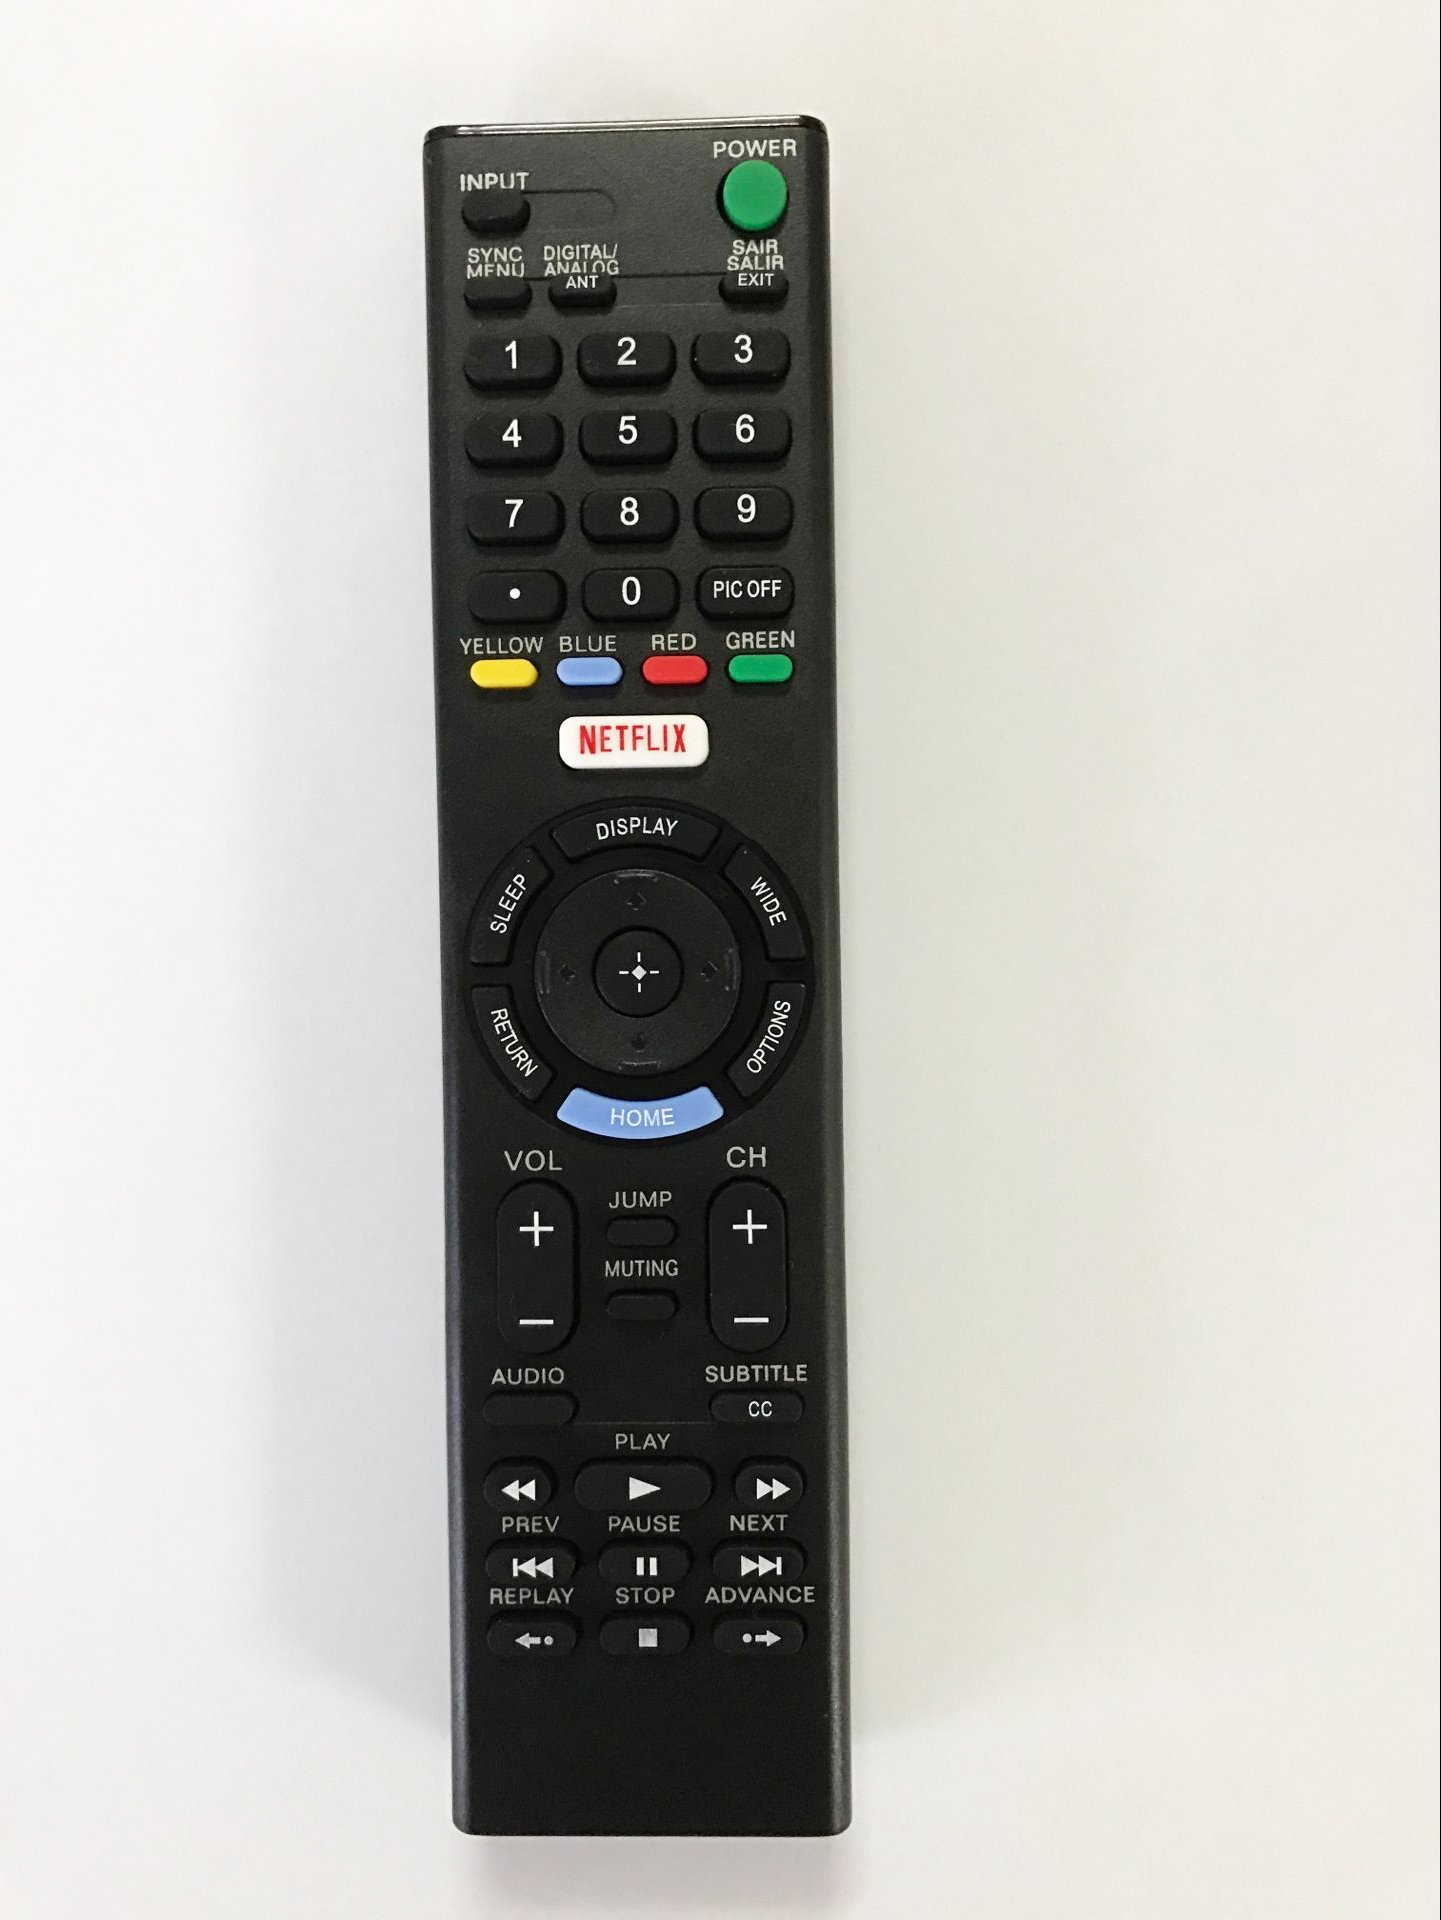 Replacement Remote Controller use for RMT-TX102U Sony KDL40W650D LED HDTV Smart TV